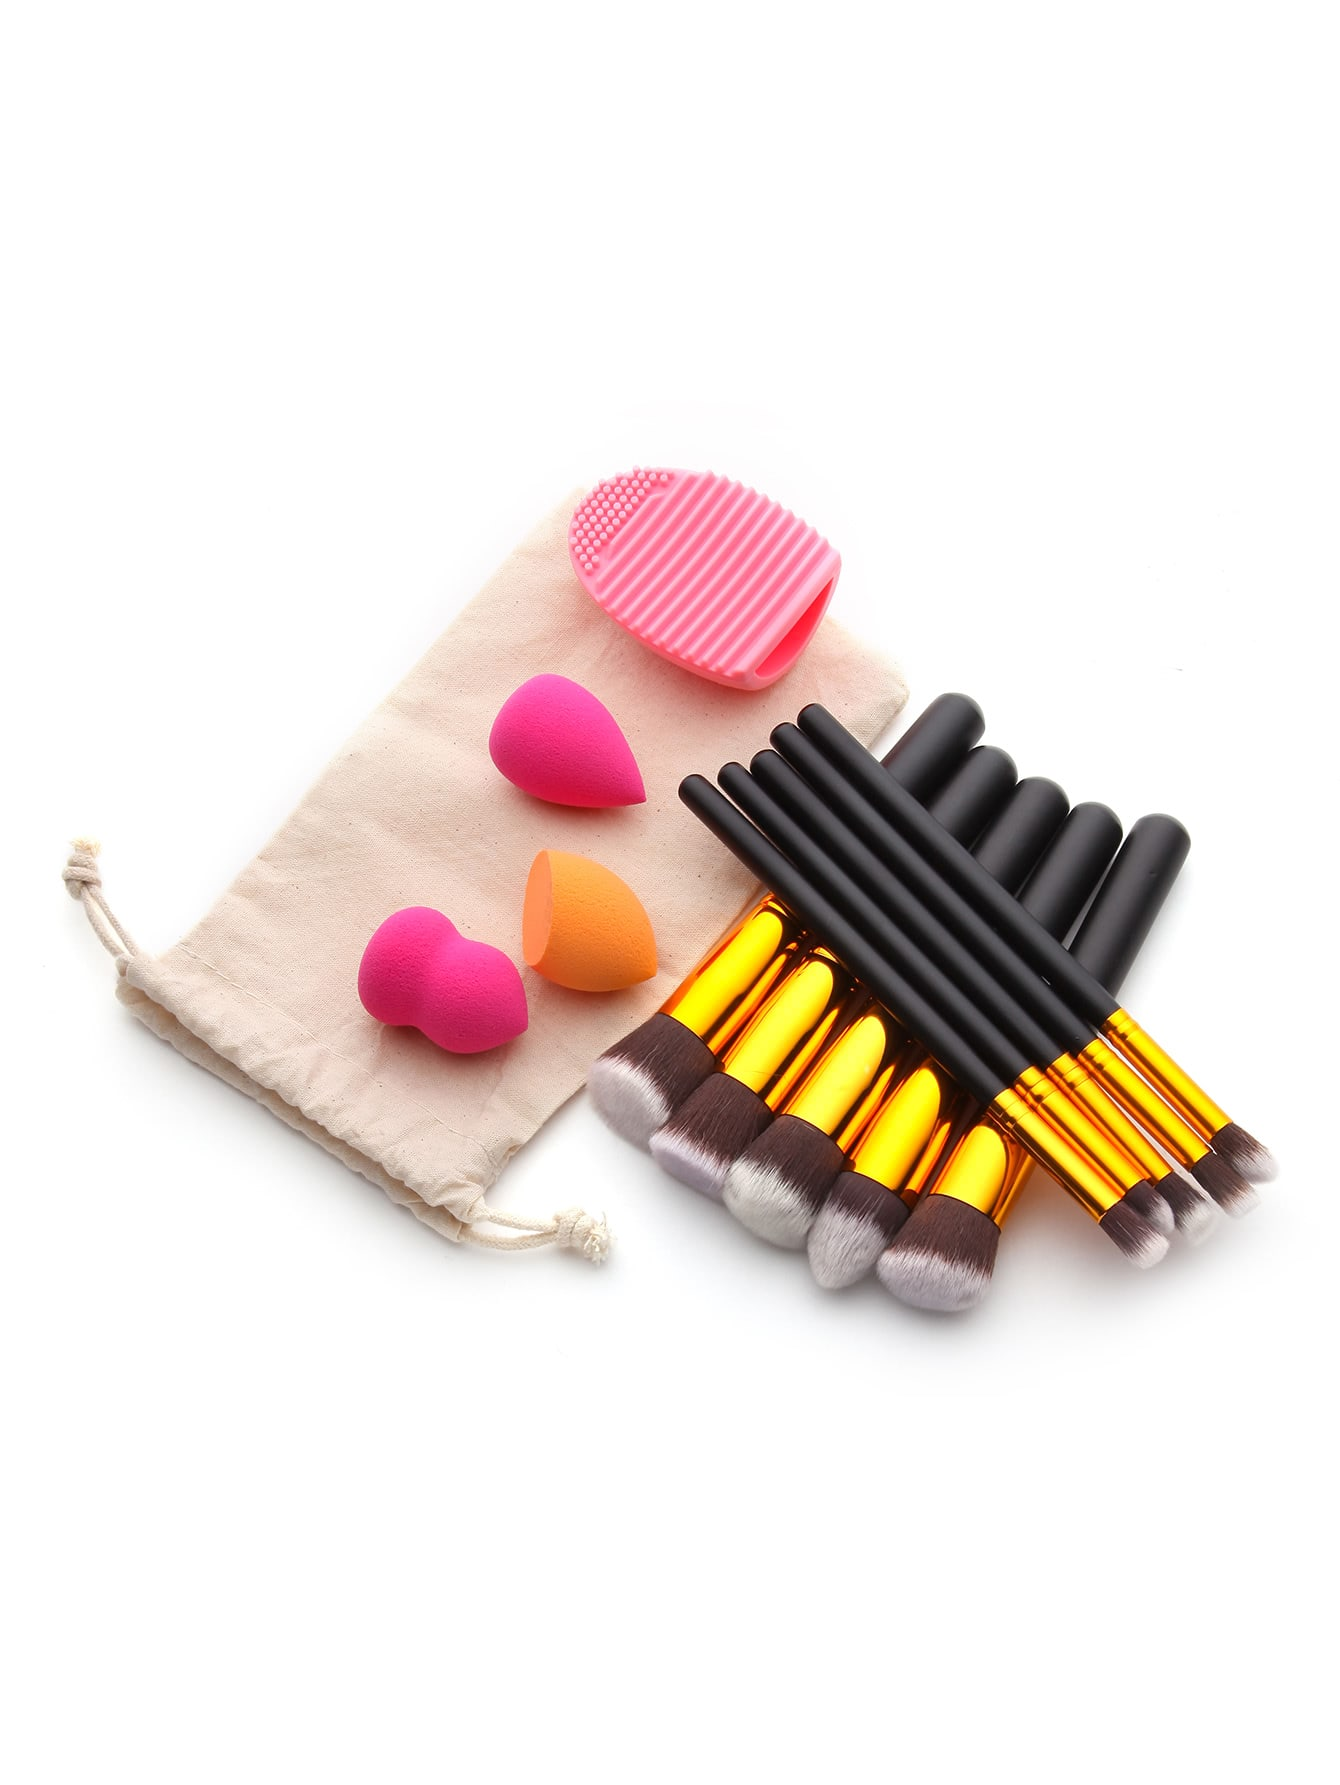 Makeup Tool Set With Puffs And Makeup Brushes twelve makeup brushes set